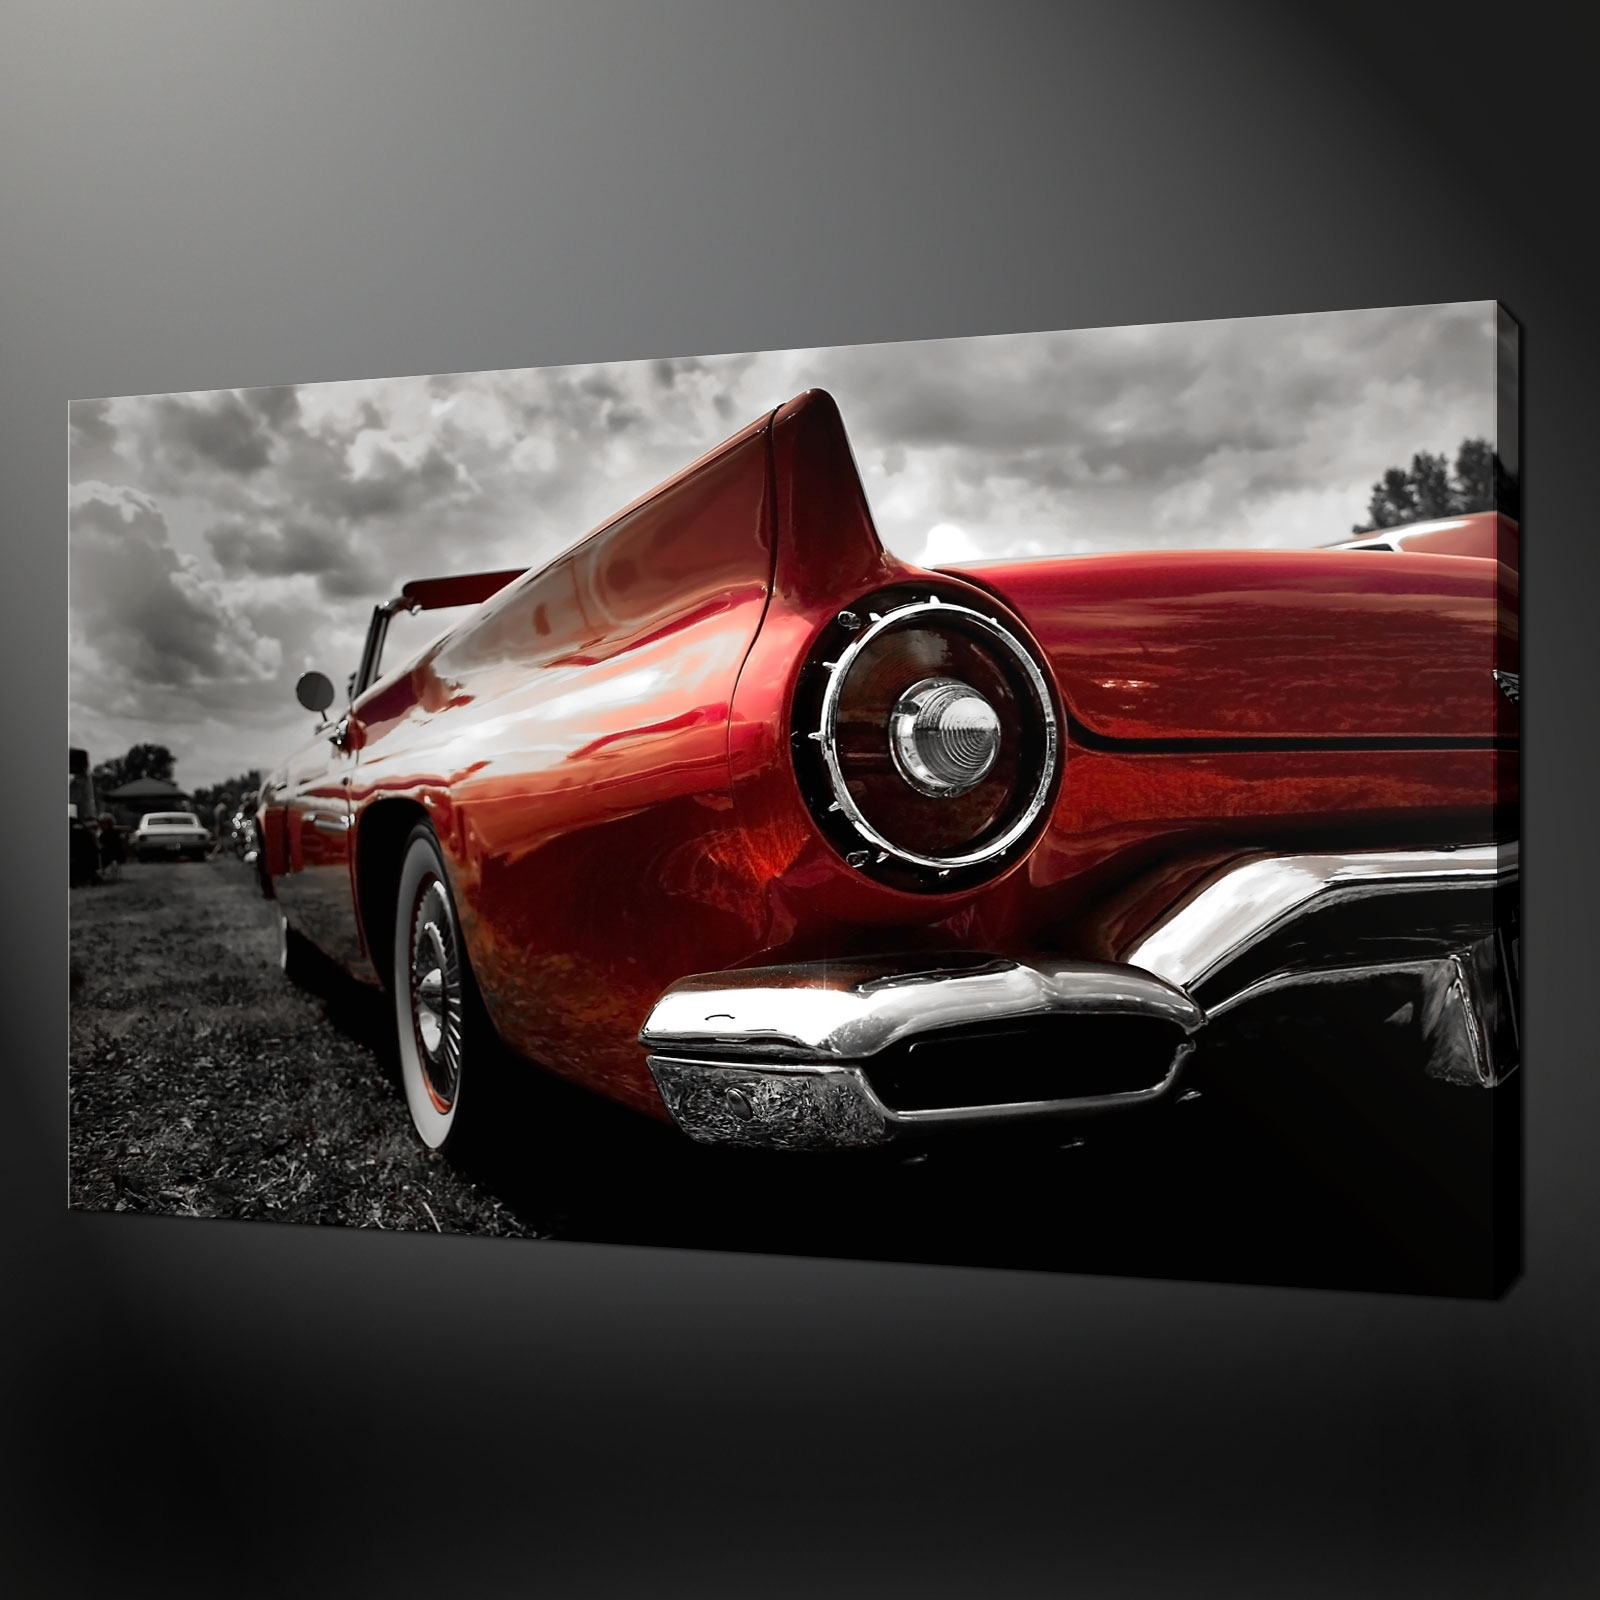 Classic Red Car Canvas Print Picture Wall Art Regarding Most Current Car Canvas Wall Art (View 10 of 20)